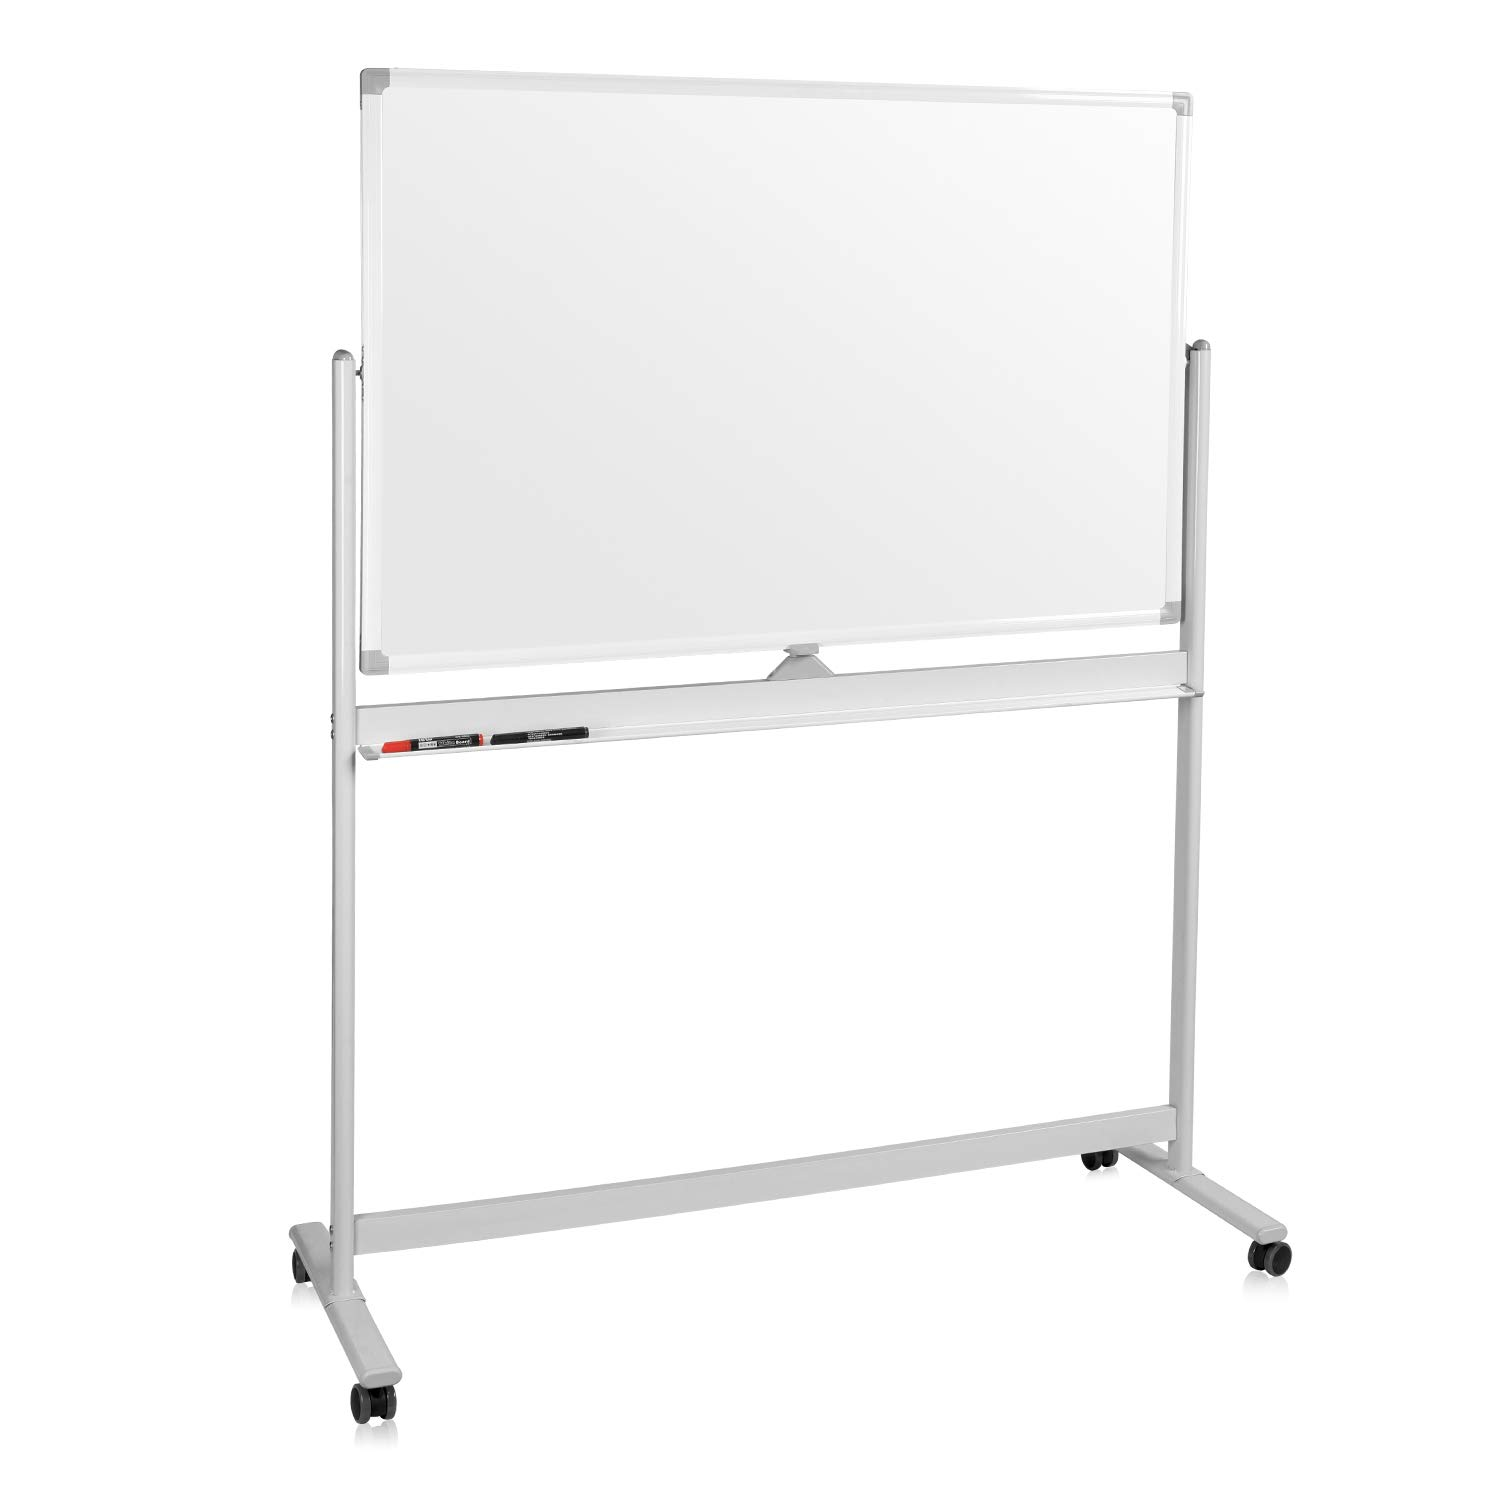 Mobile Whiteboard 48x32 Inch, Double Sided Dry Erase Board Aluminum Frame, Rolling Stand White Board & Accessories with 1 Eraser, 4 Pens, 12 Push Stickers